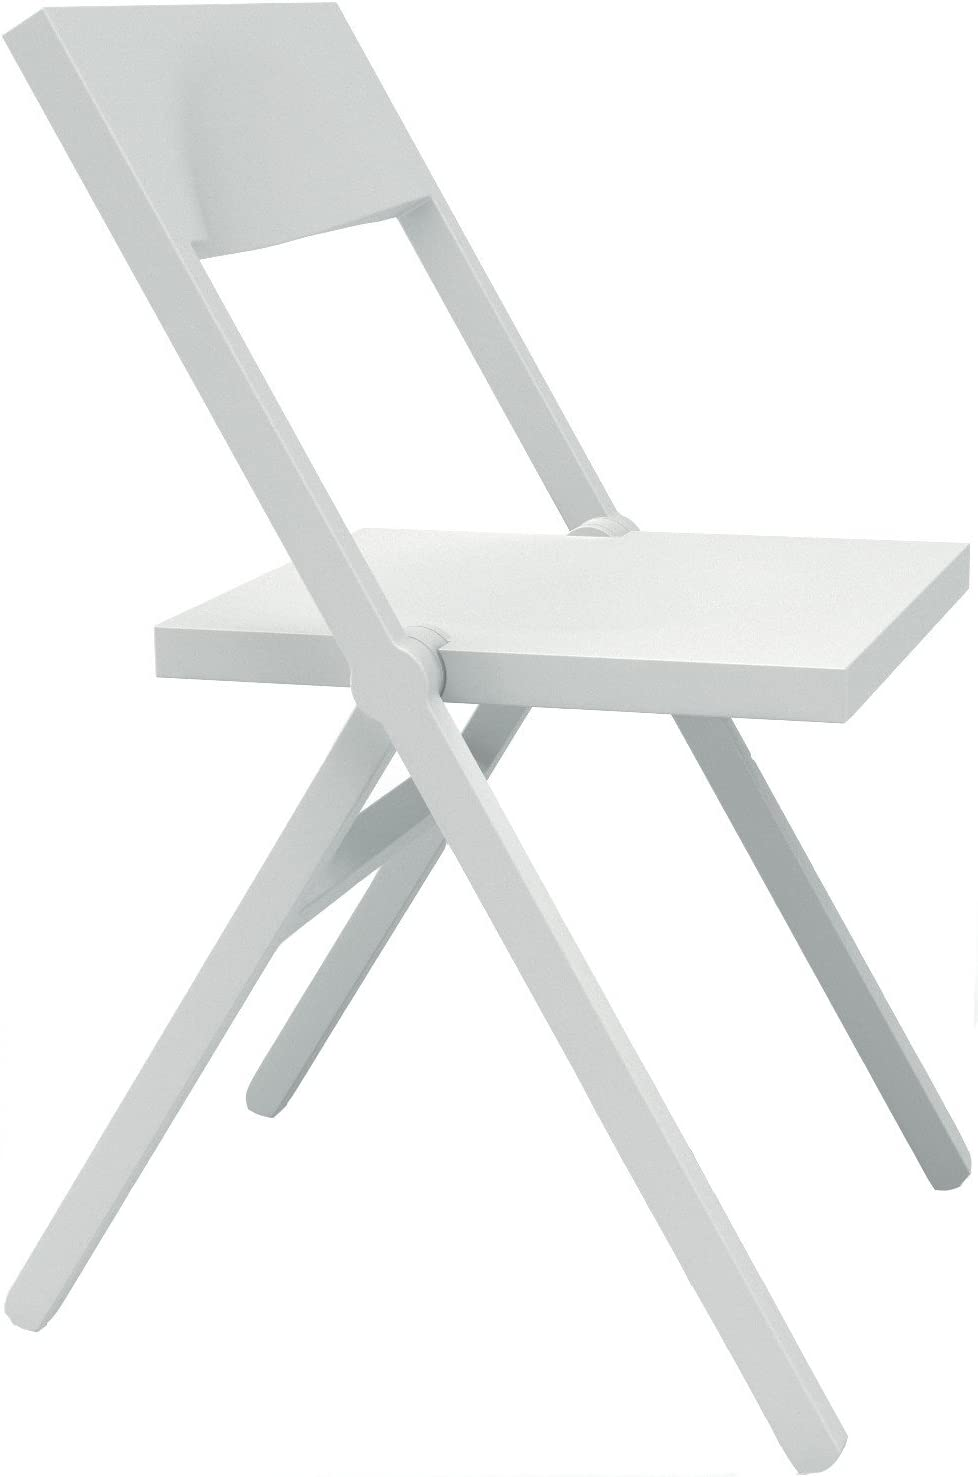 52 x 46 x 90 cm Brown Alessi Folding and Stackable Chair in PP and Fiberglass